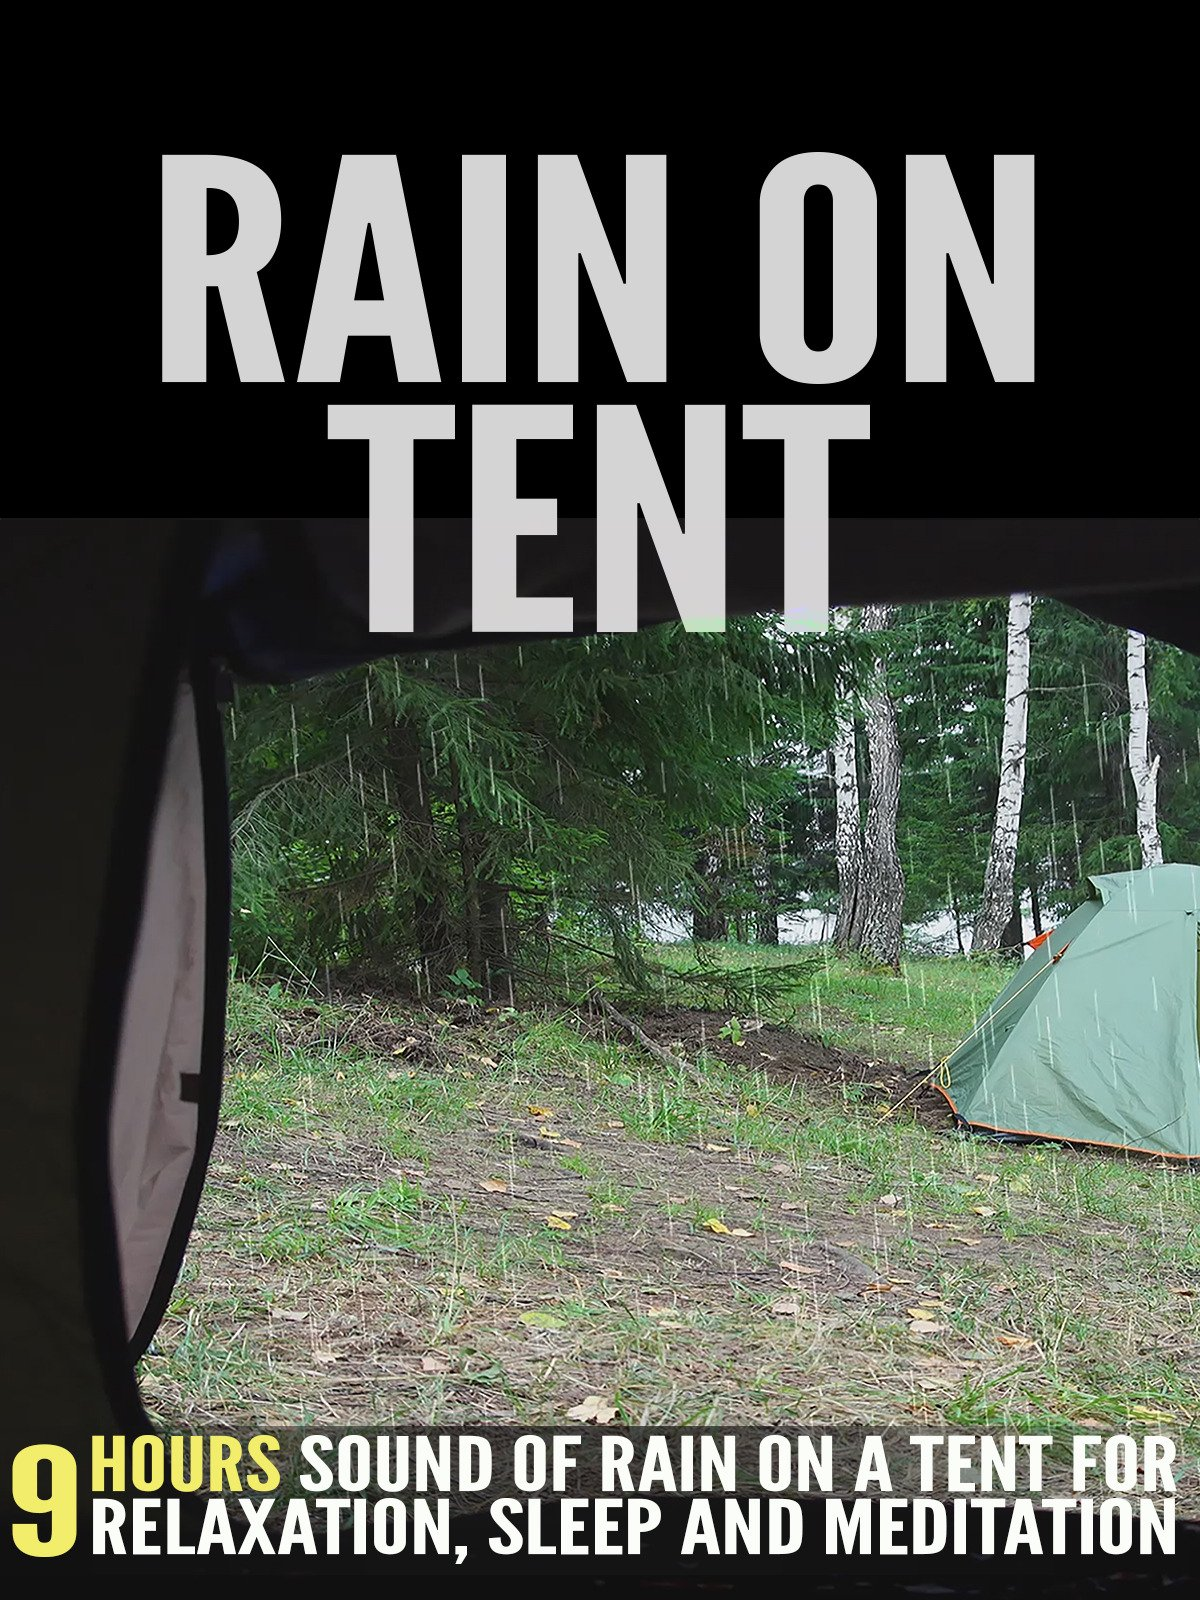 Rain on Tent: 9 Hours Sound of Rain on a Tent for Relaxation, Sleep and Meditation